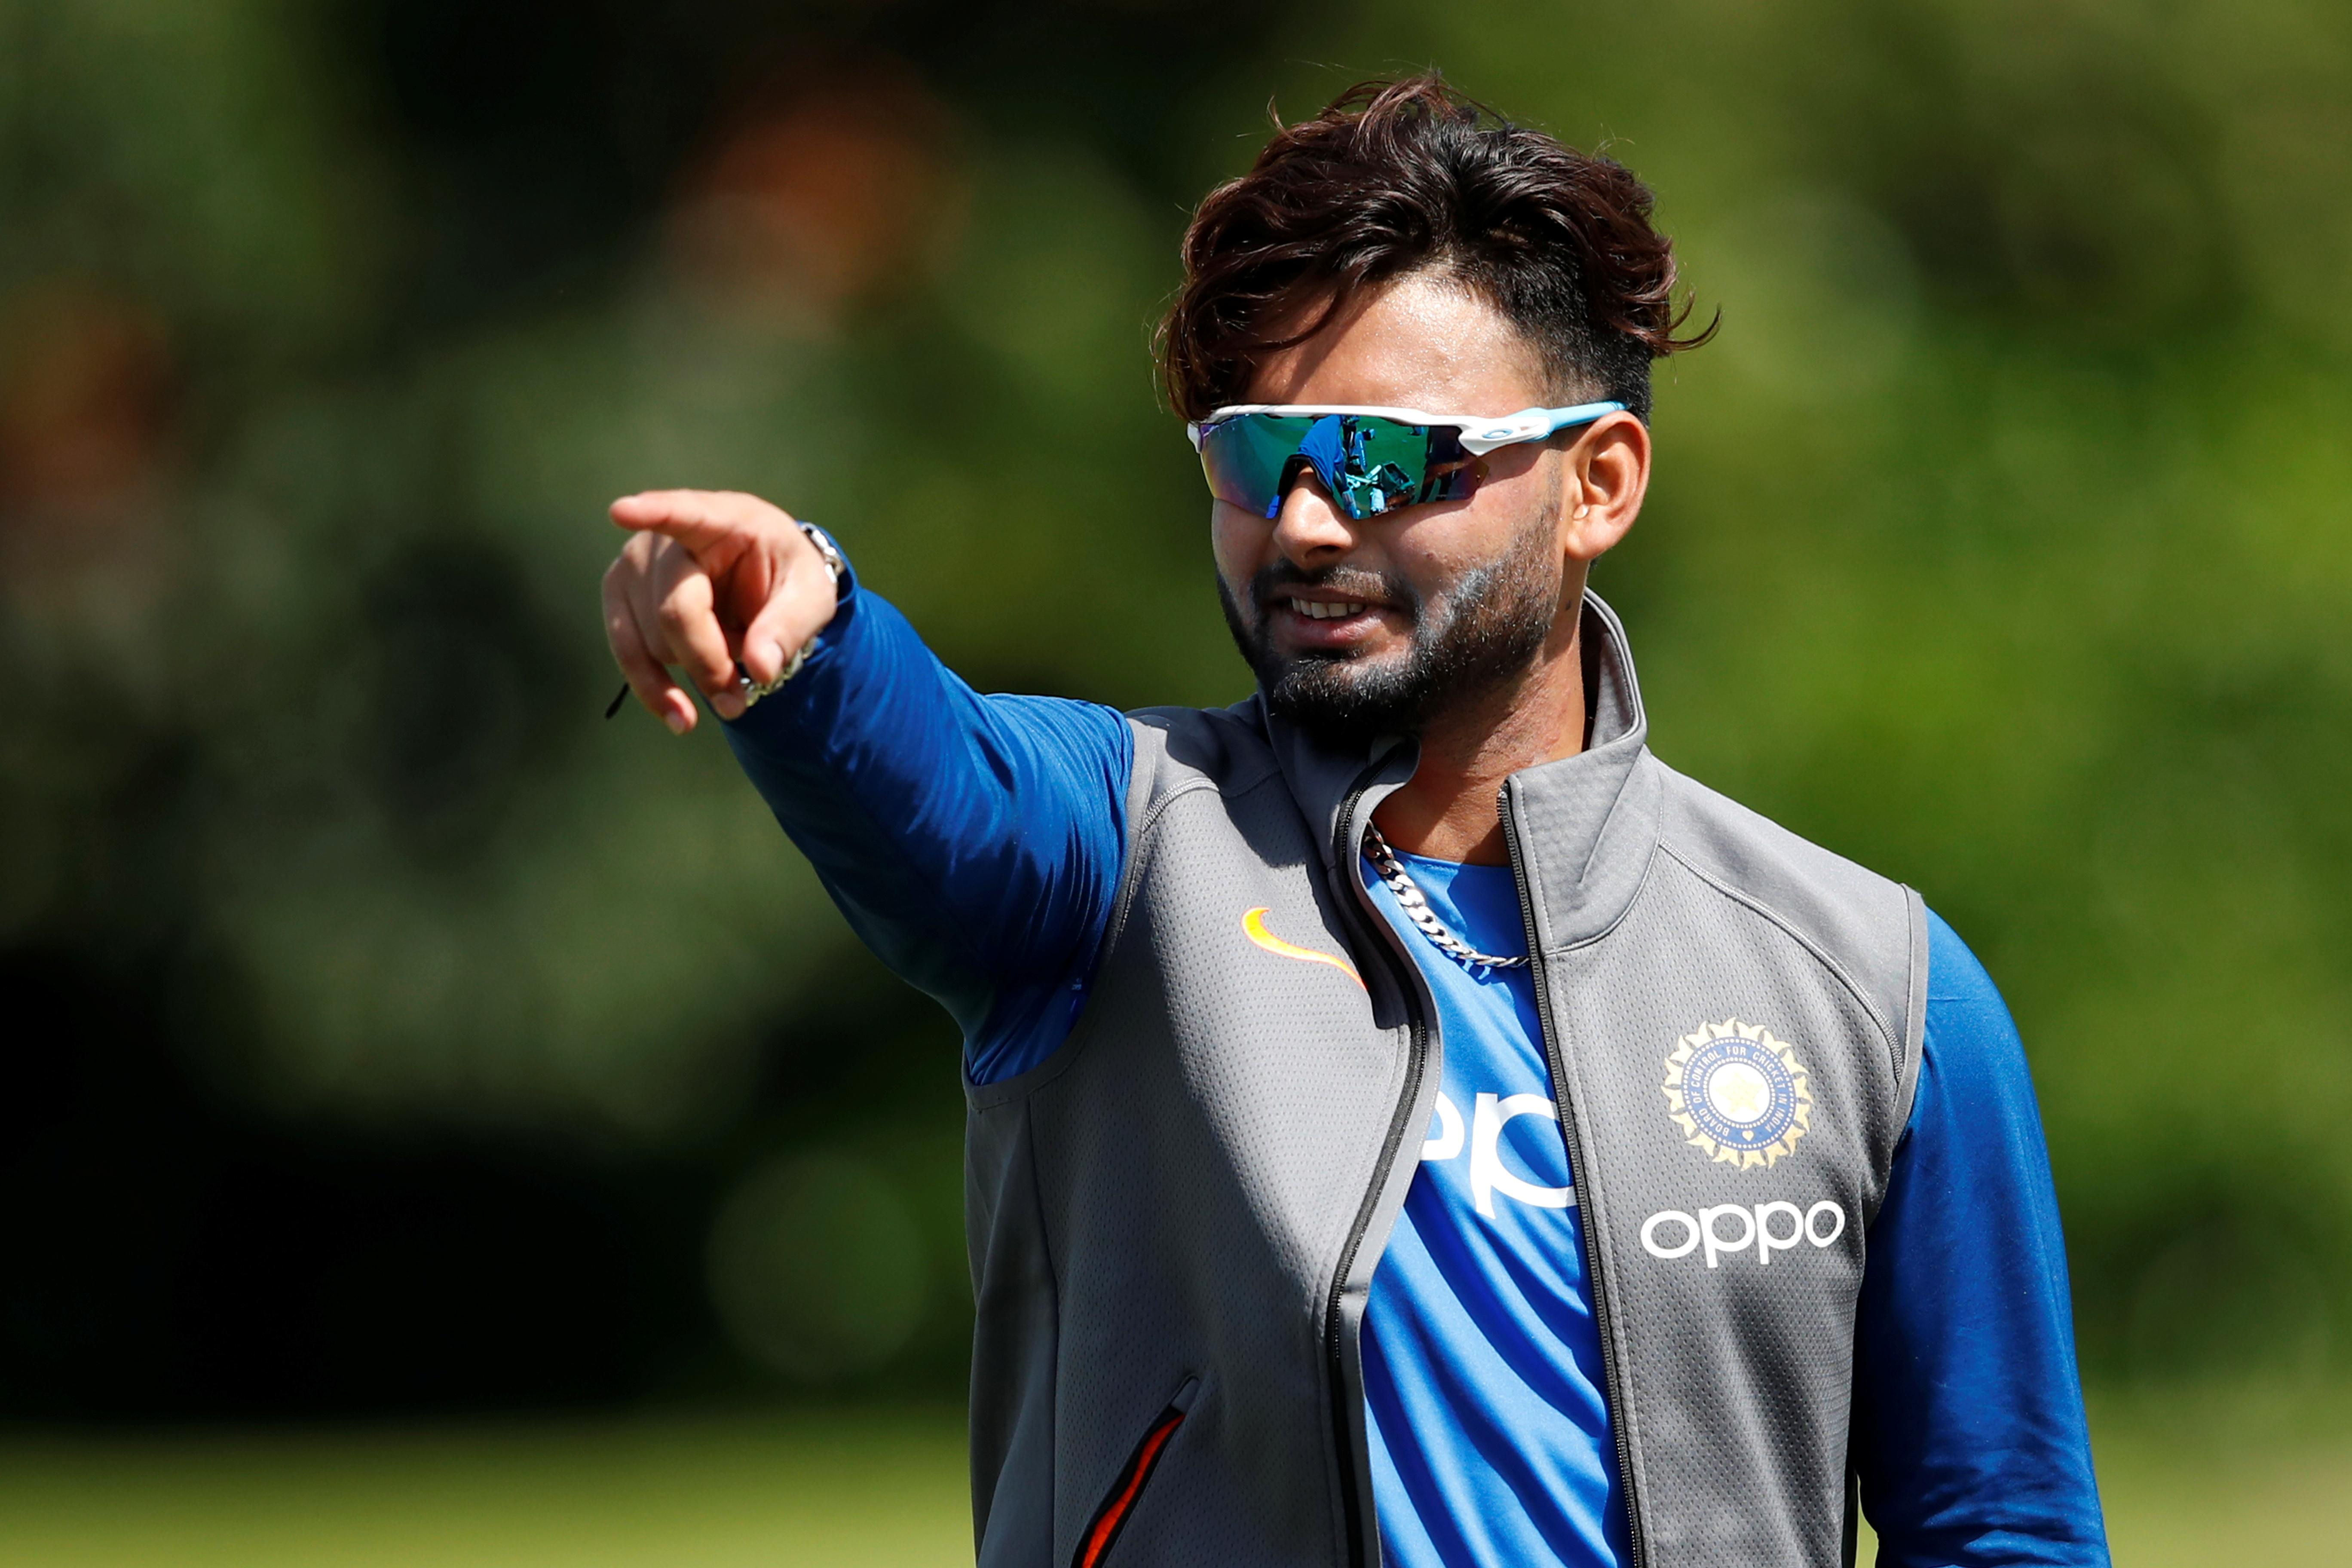 Cricket: India hand Pant debut, Roy returns for England